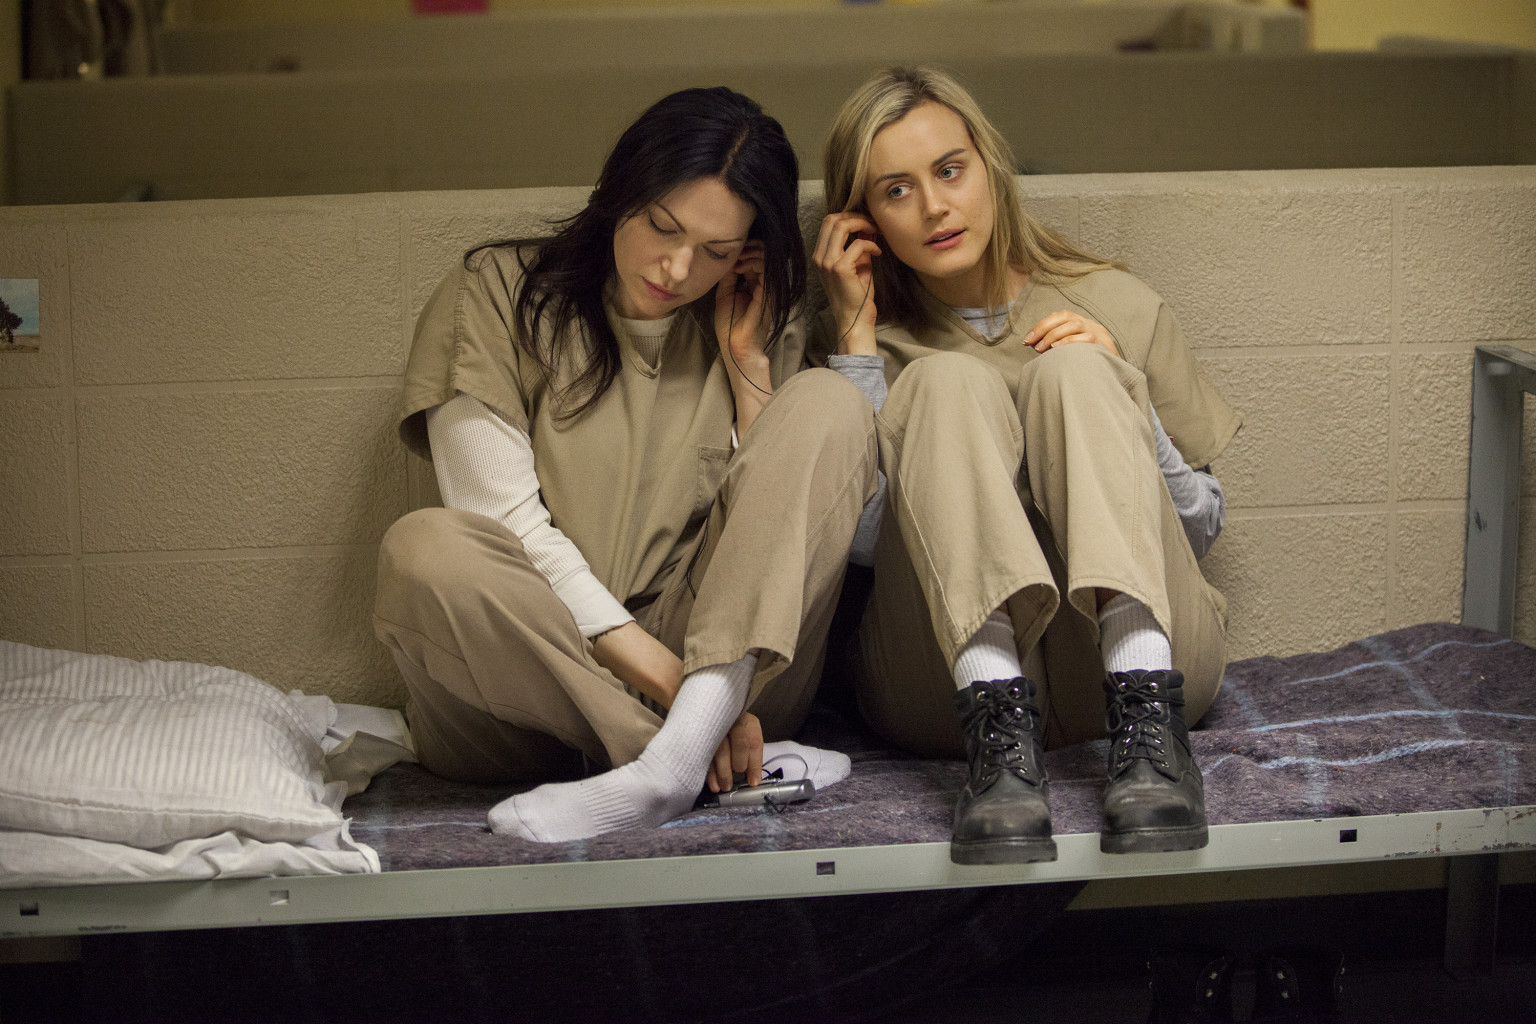 Orange is the new black lesbian scenes